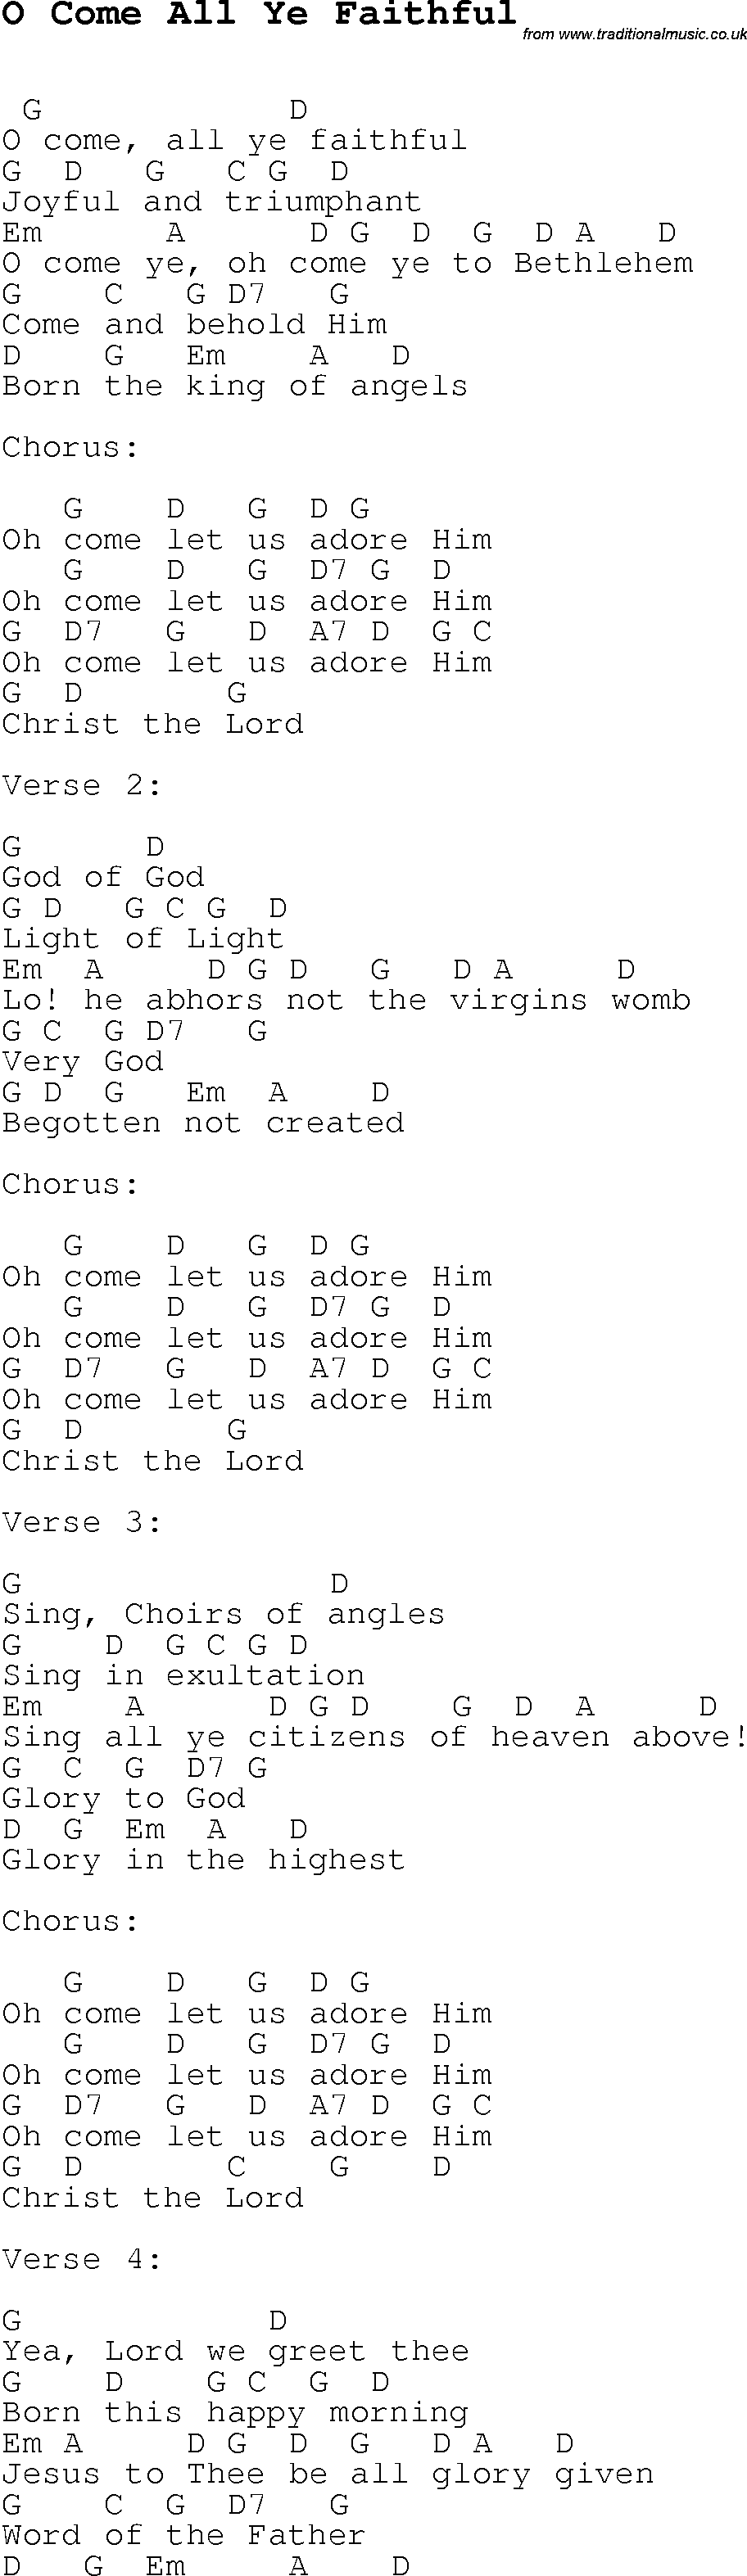 Christmas Songs and Carols, lyrics with chords for guitar banjo for O Come All Ye Faithful ...